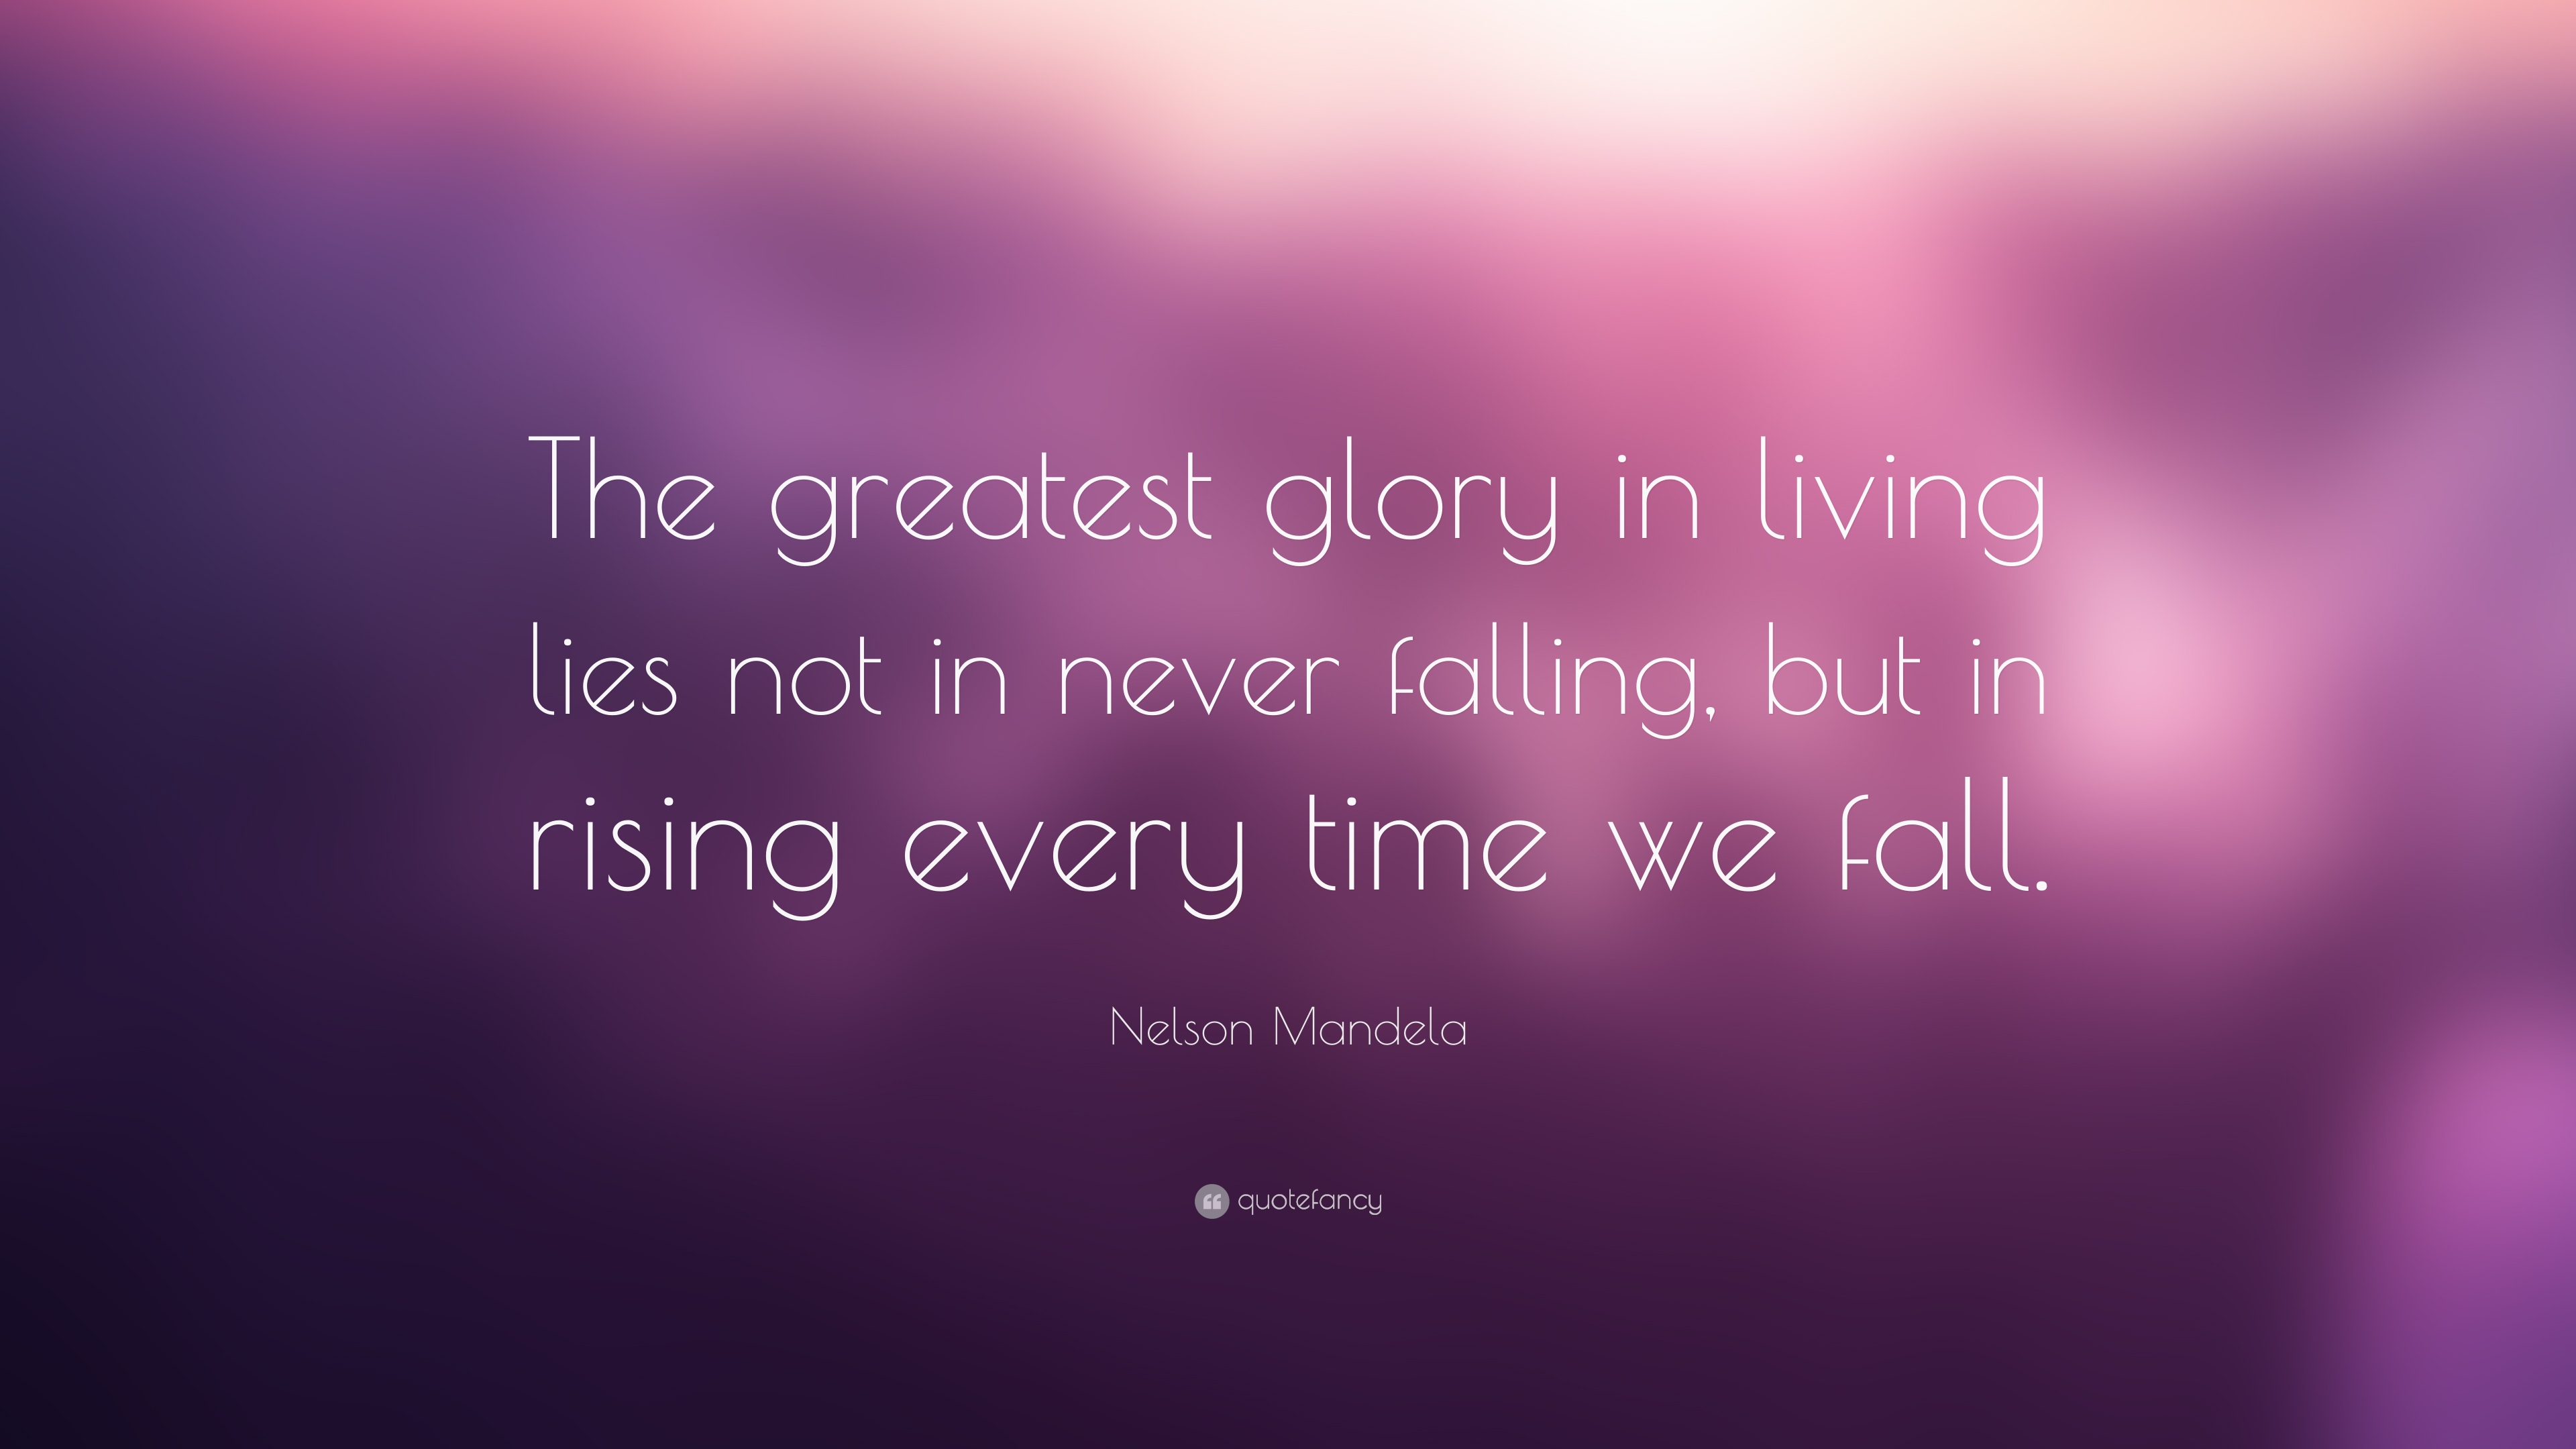 nelson mandela quote   u201cthe greatest glory in living lies